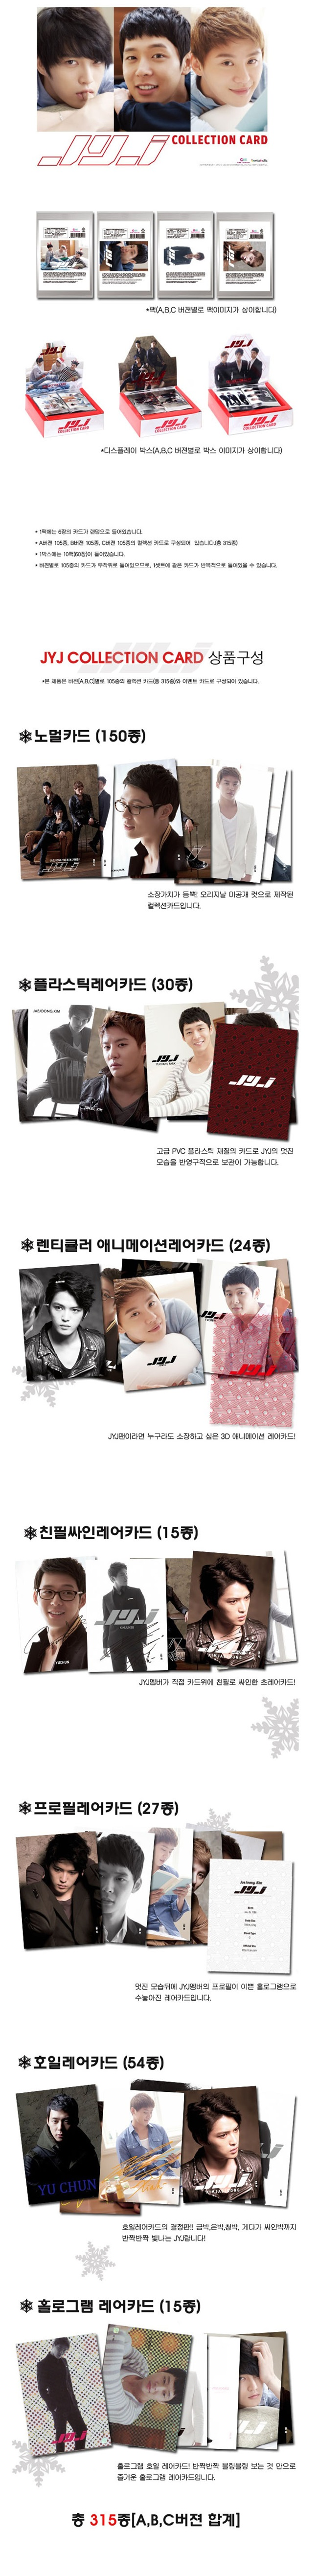 [JYJ] Now Jay and Collection Card (A,B,C version)